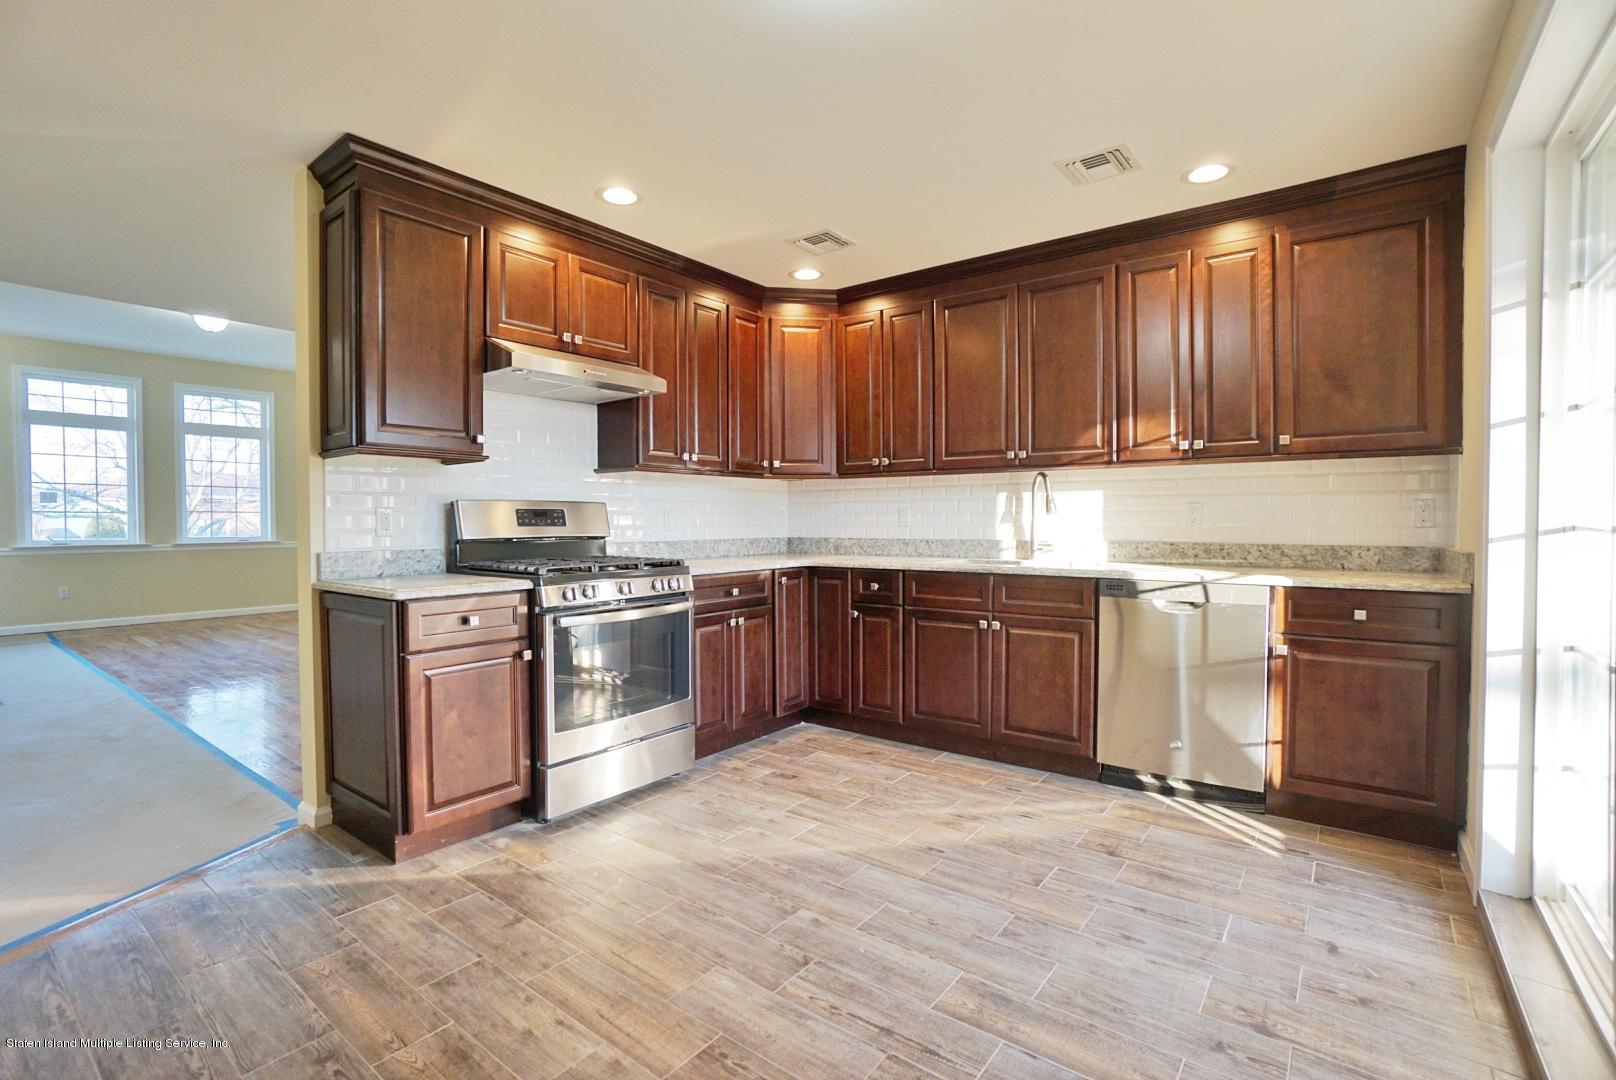 Single Family - Attached 34 Bamberger Lane  Staten Island, NY 10312, MLS-1135521-7